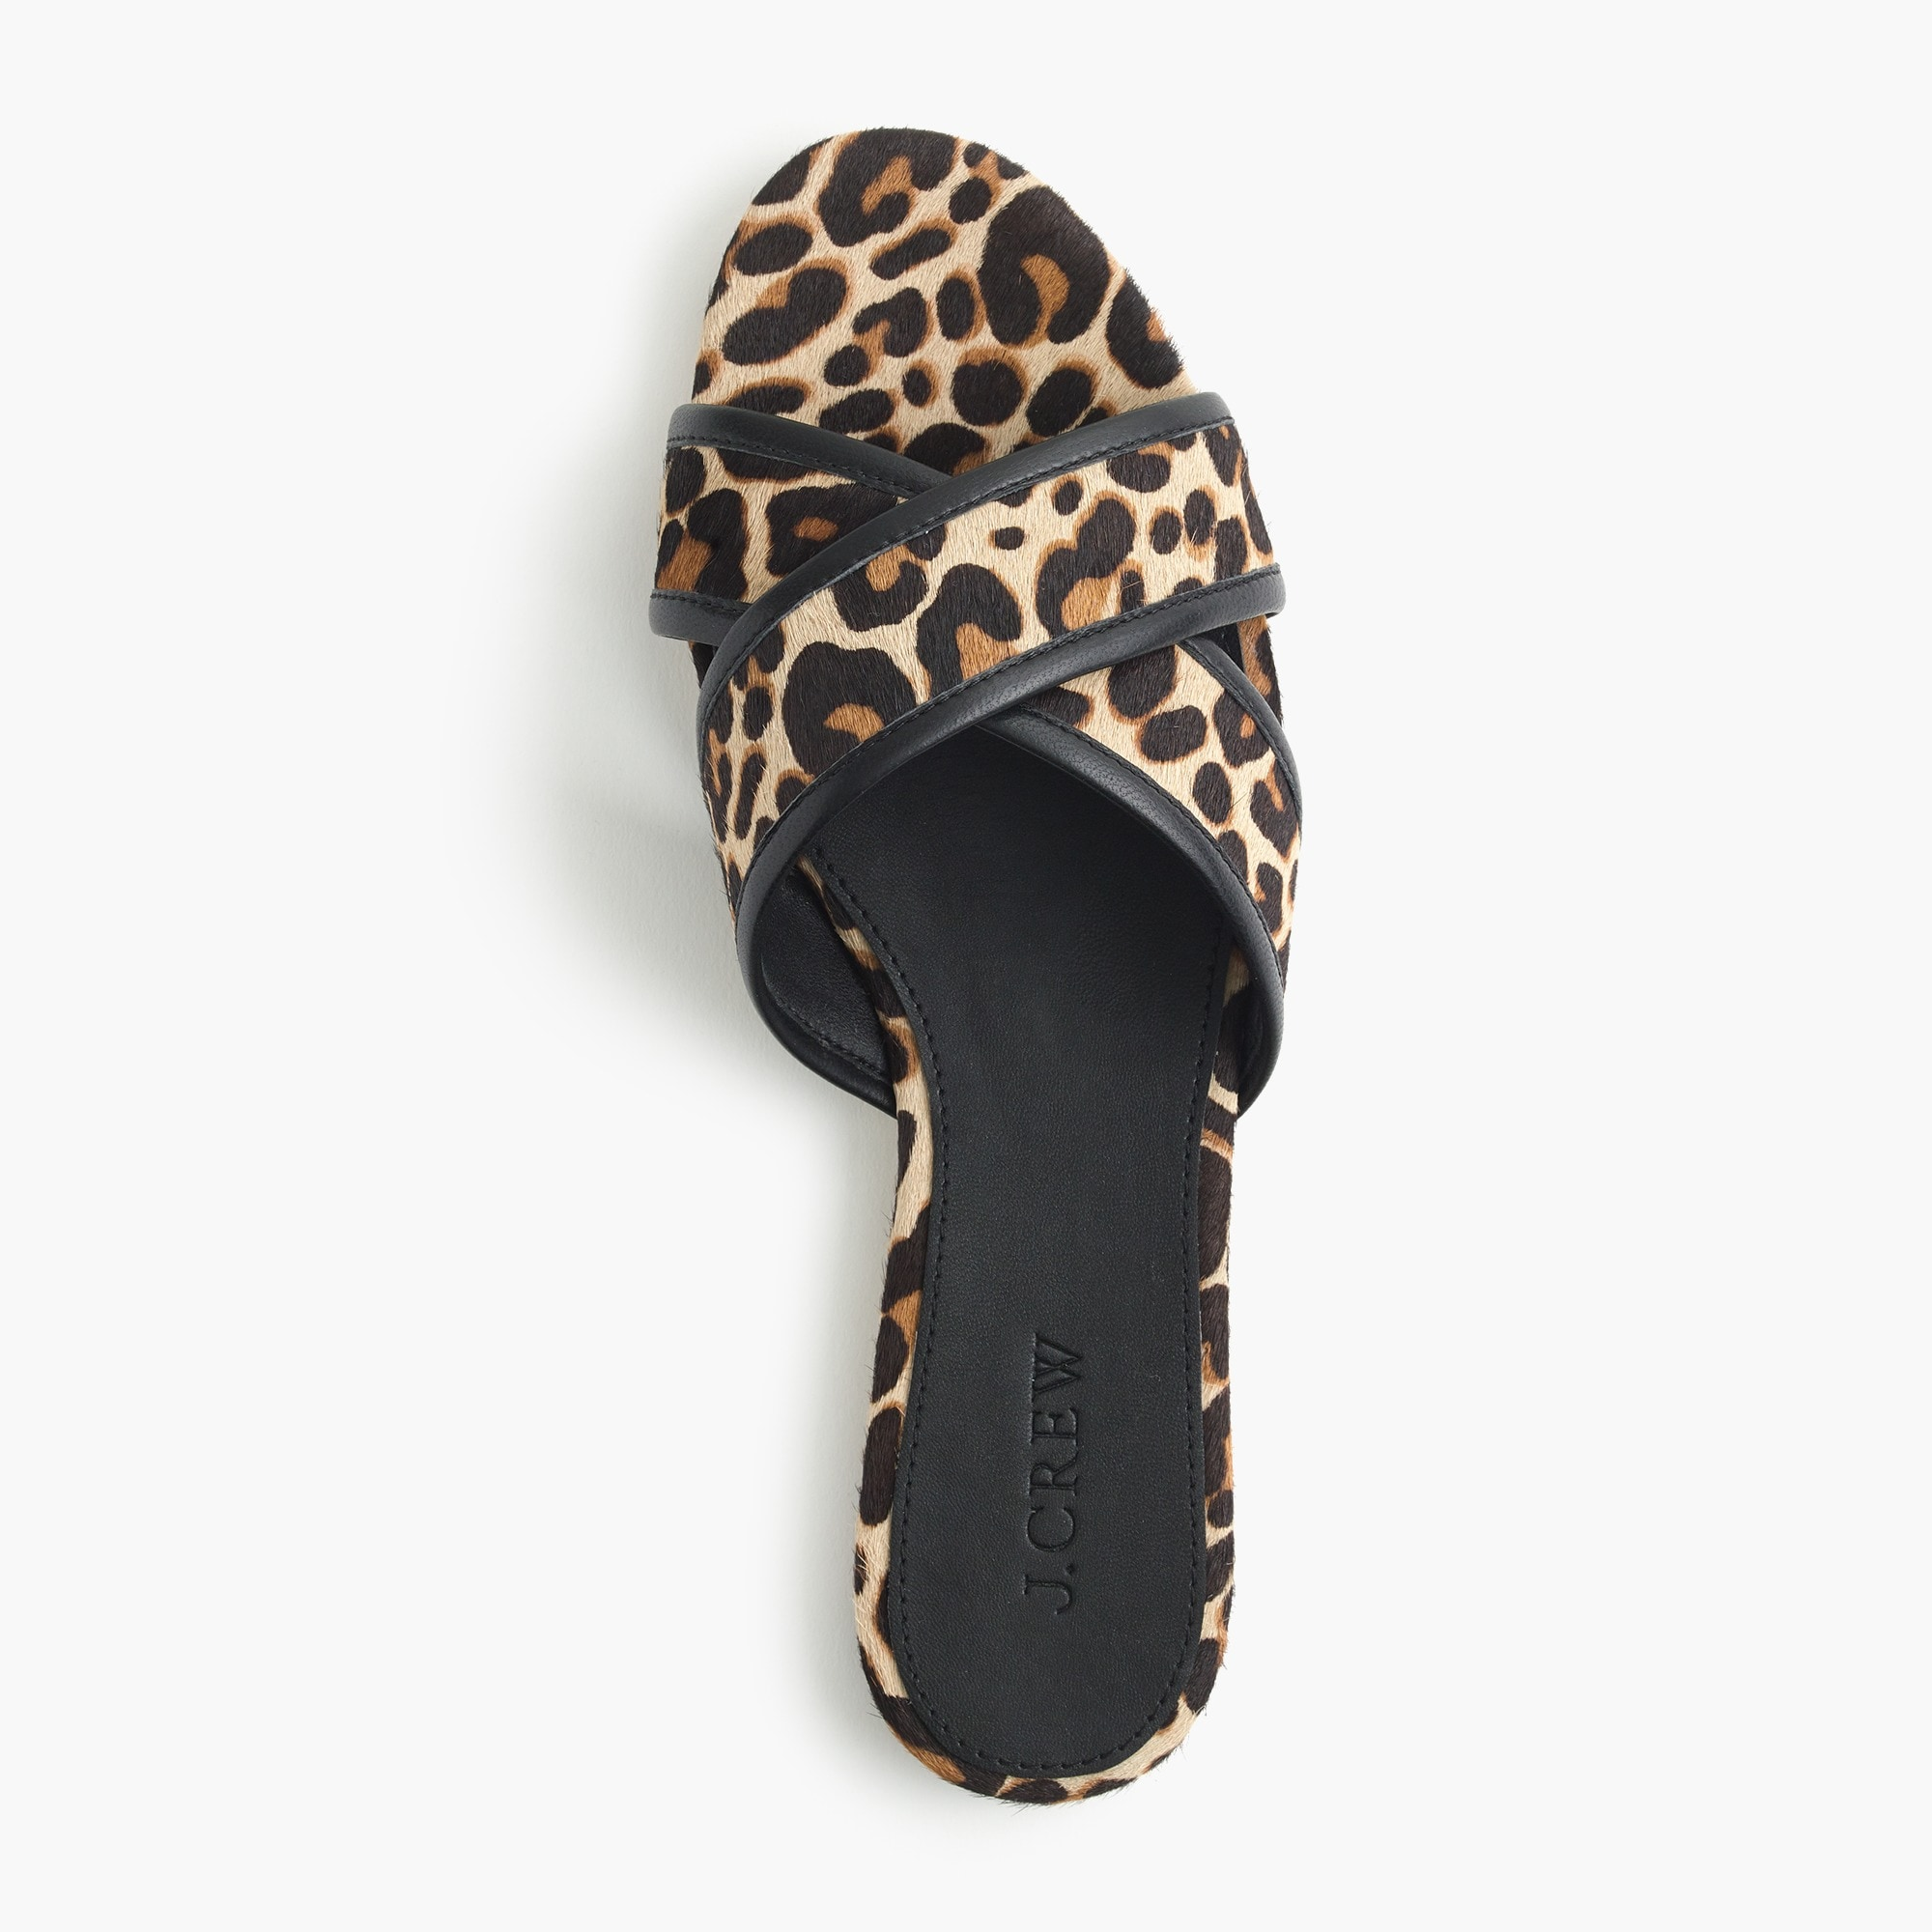 Image 2 for Leopard Cora crisscross sandals